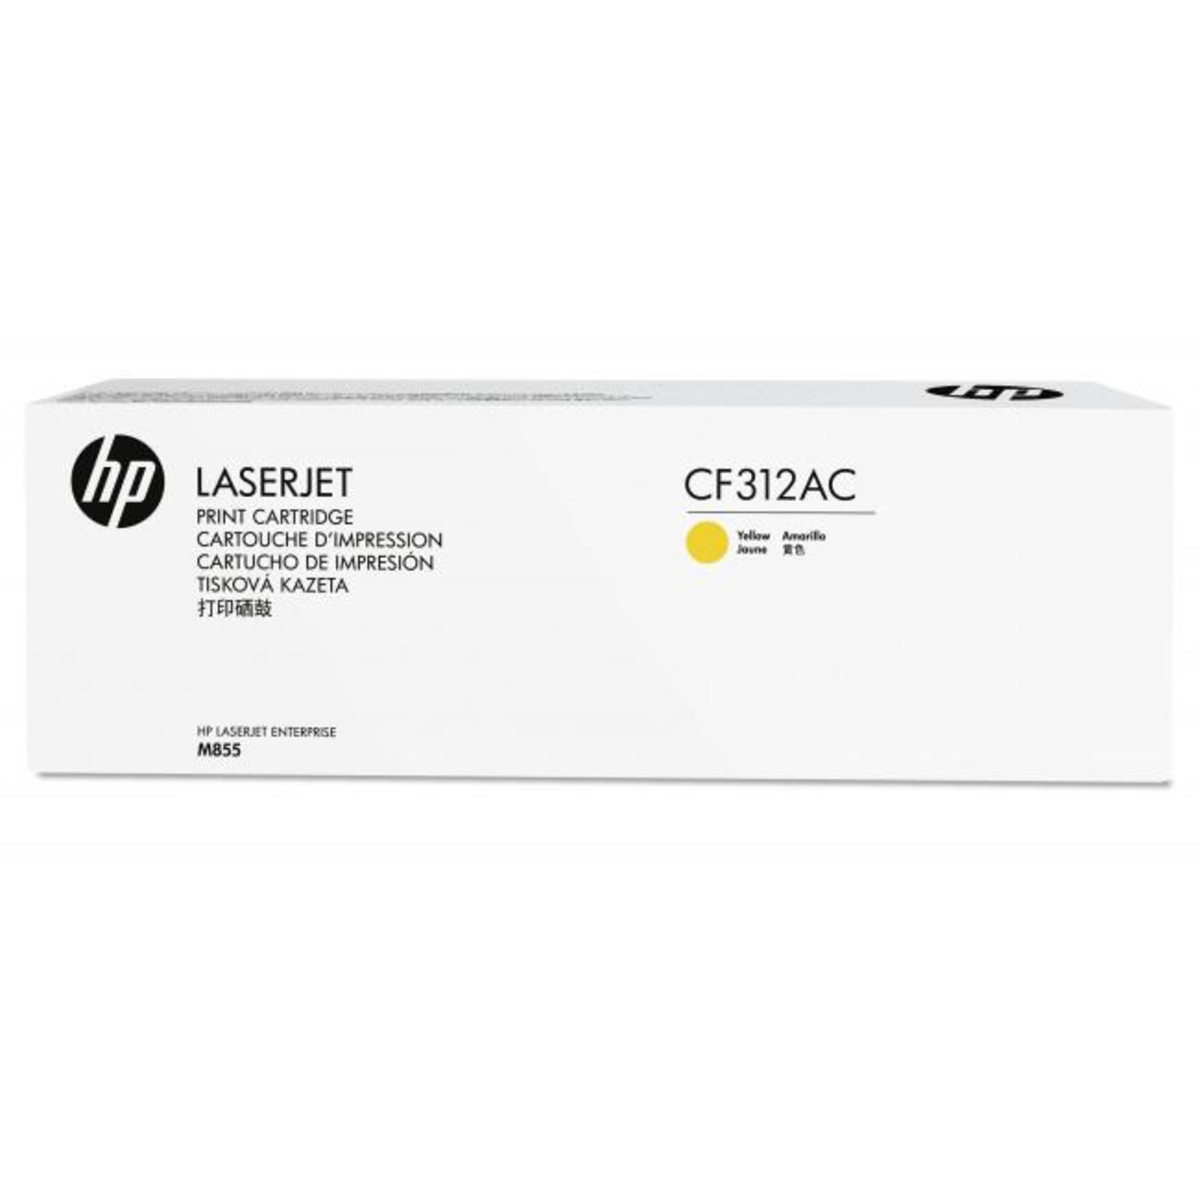 HP 826A (CF312AC) Yellow Toner Cartridge - Contract Toner